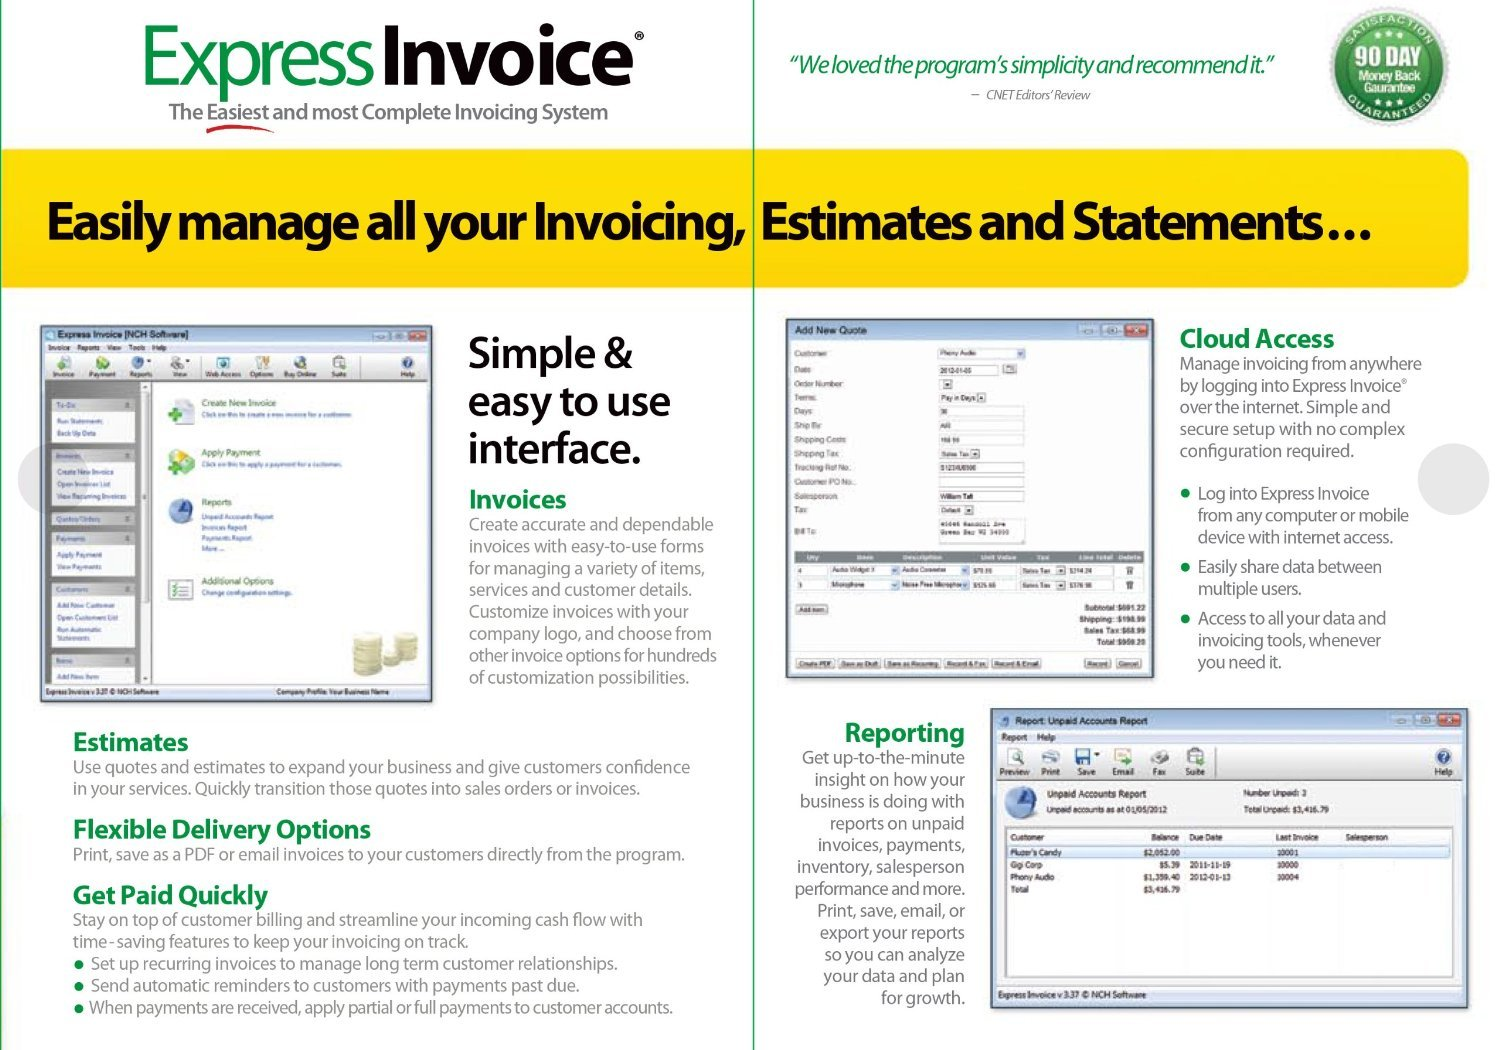 Amazoncom Express Invoice Professional Invoicing Software PC - Invoice simple review